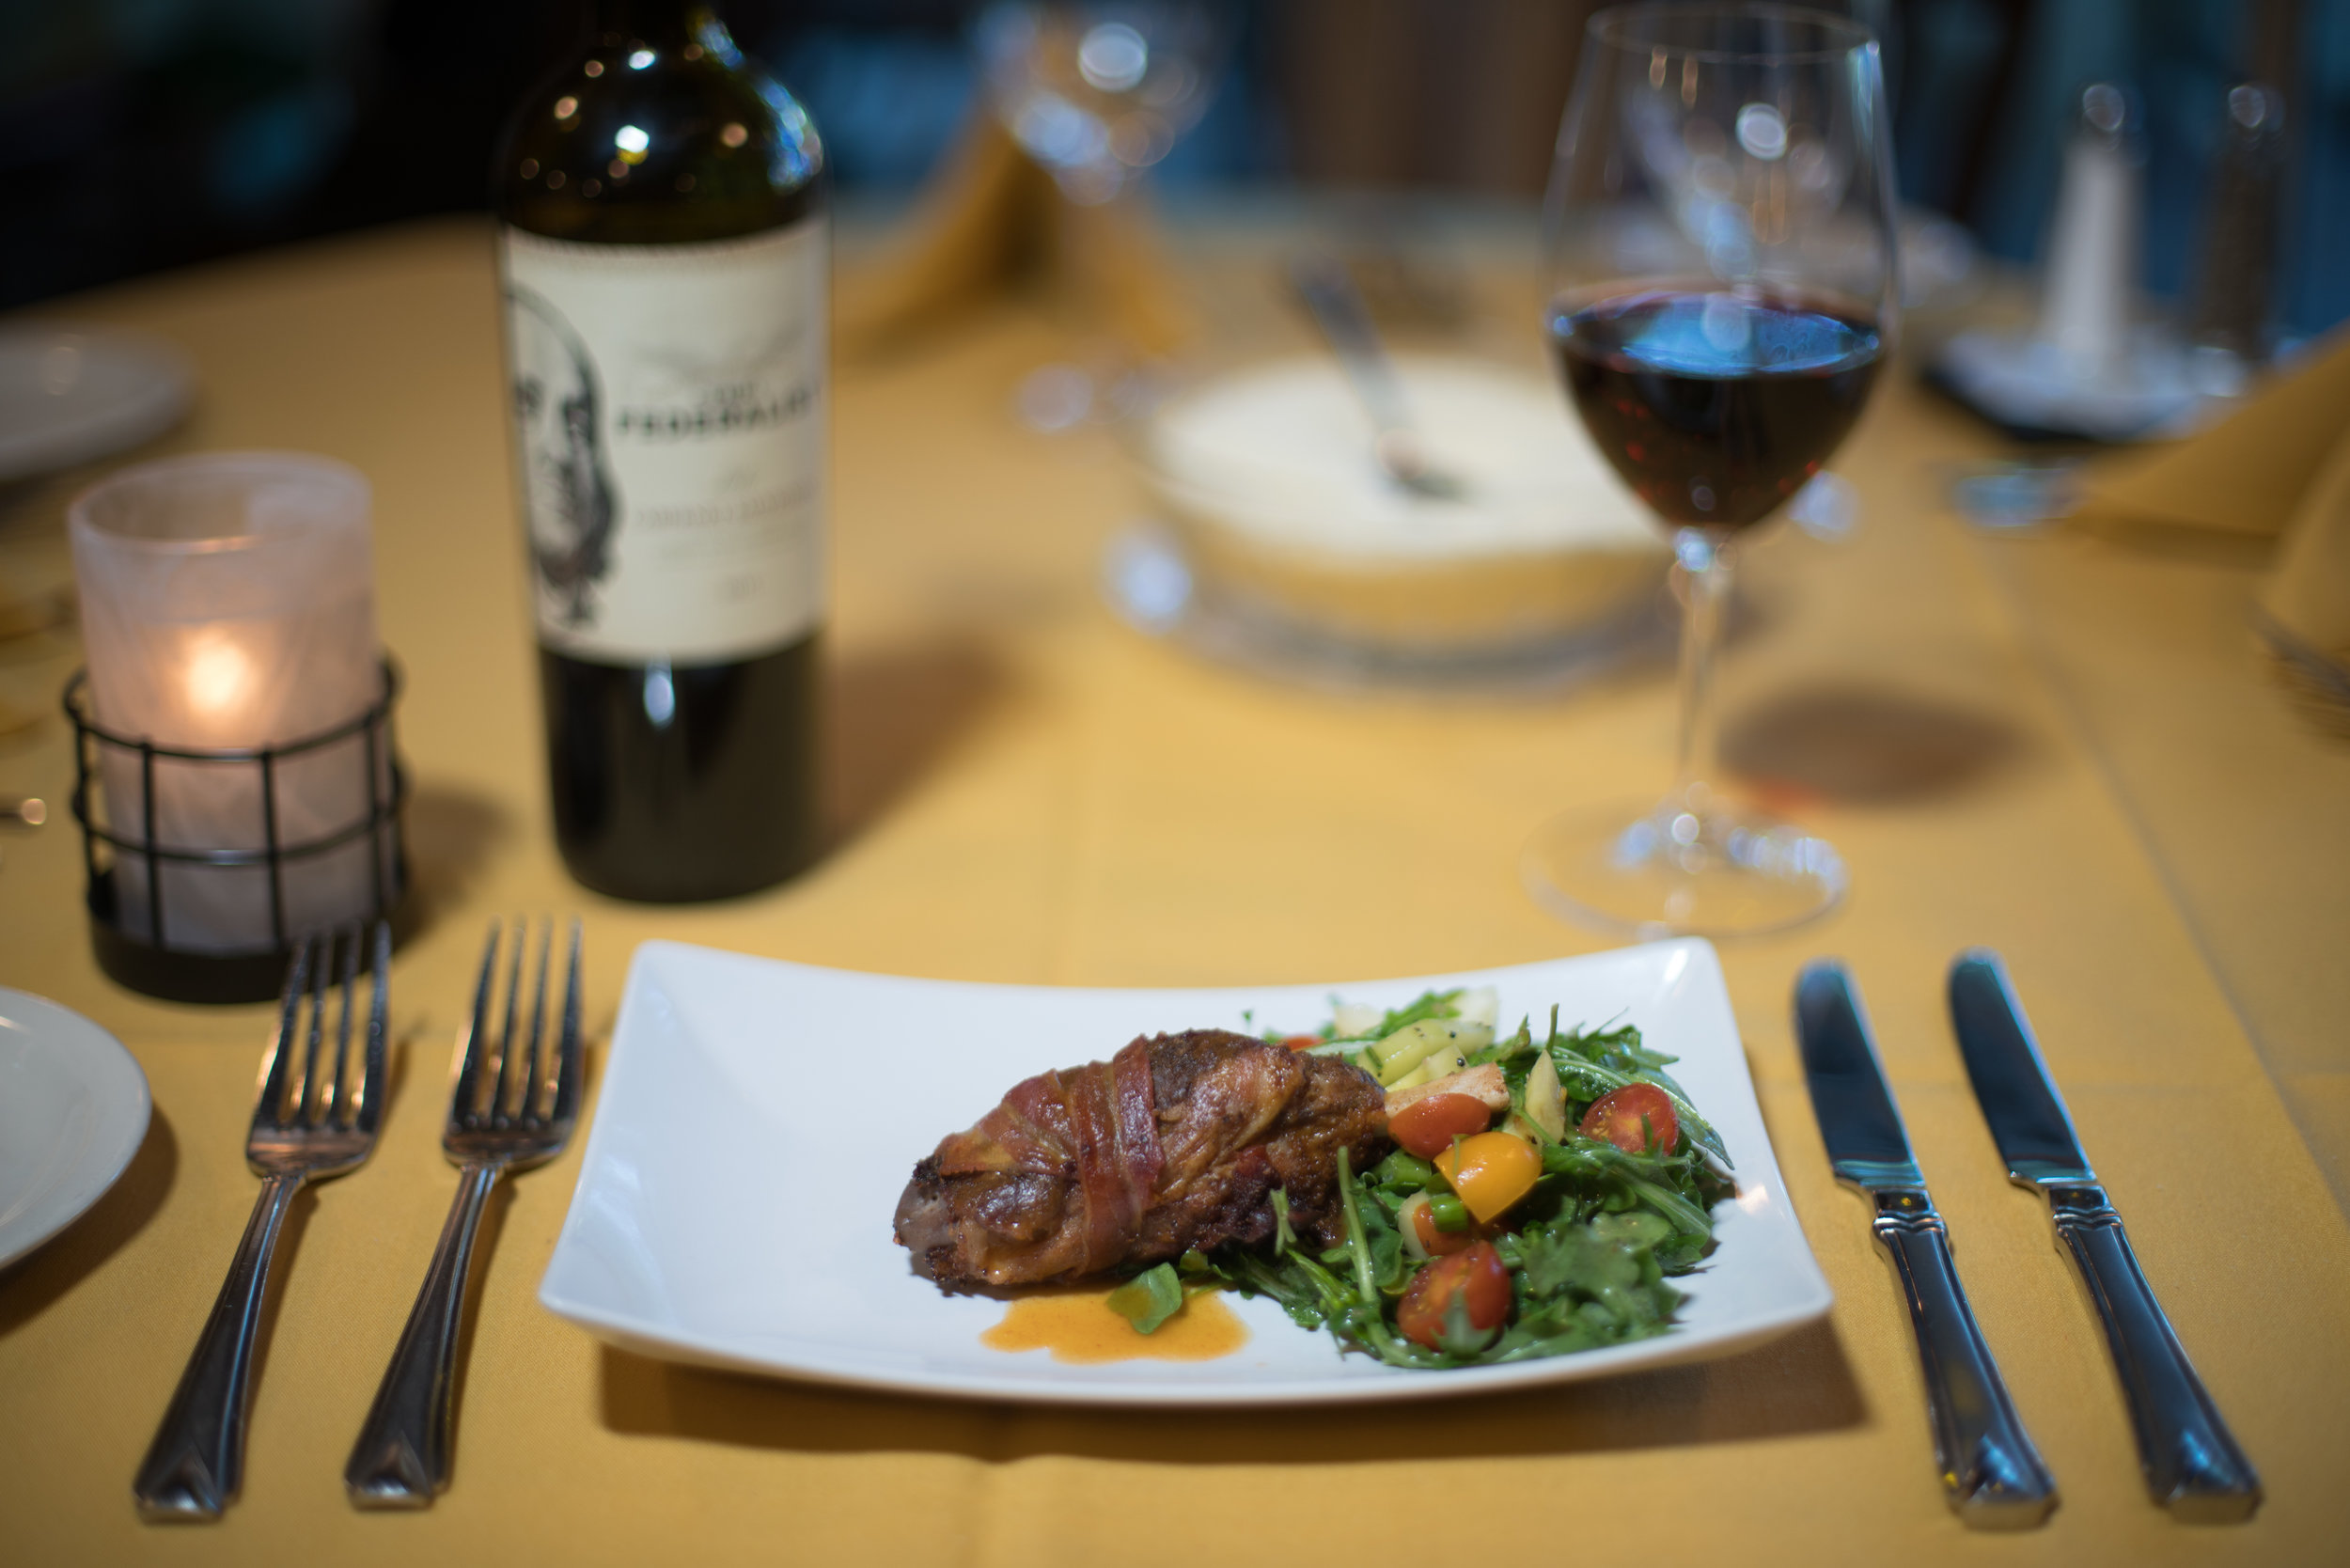 Baby Osso Bucco - Baby pork shank wrapped in pancetta, sautéed and served with spicy mango glaze over arugula salad.